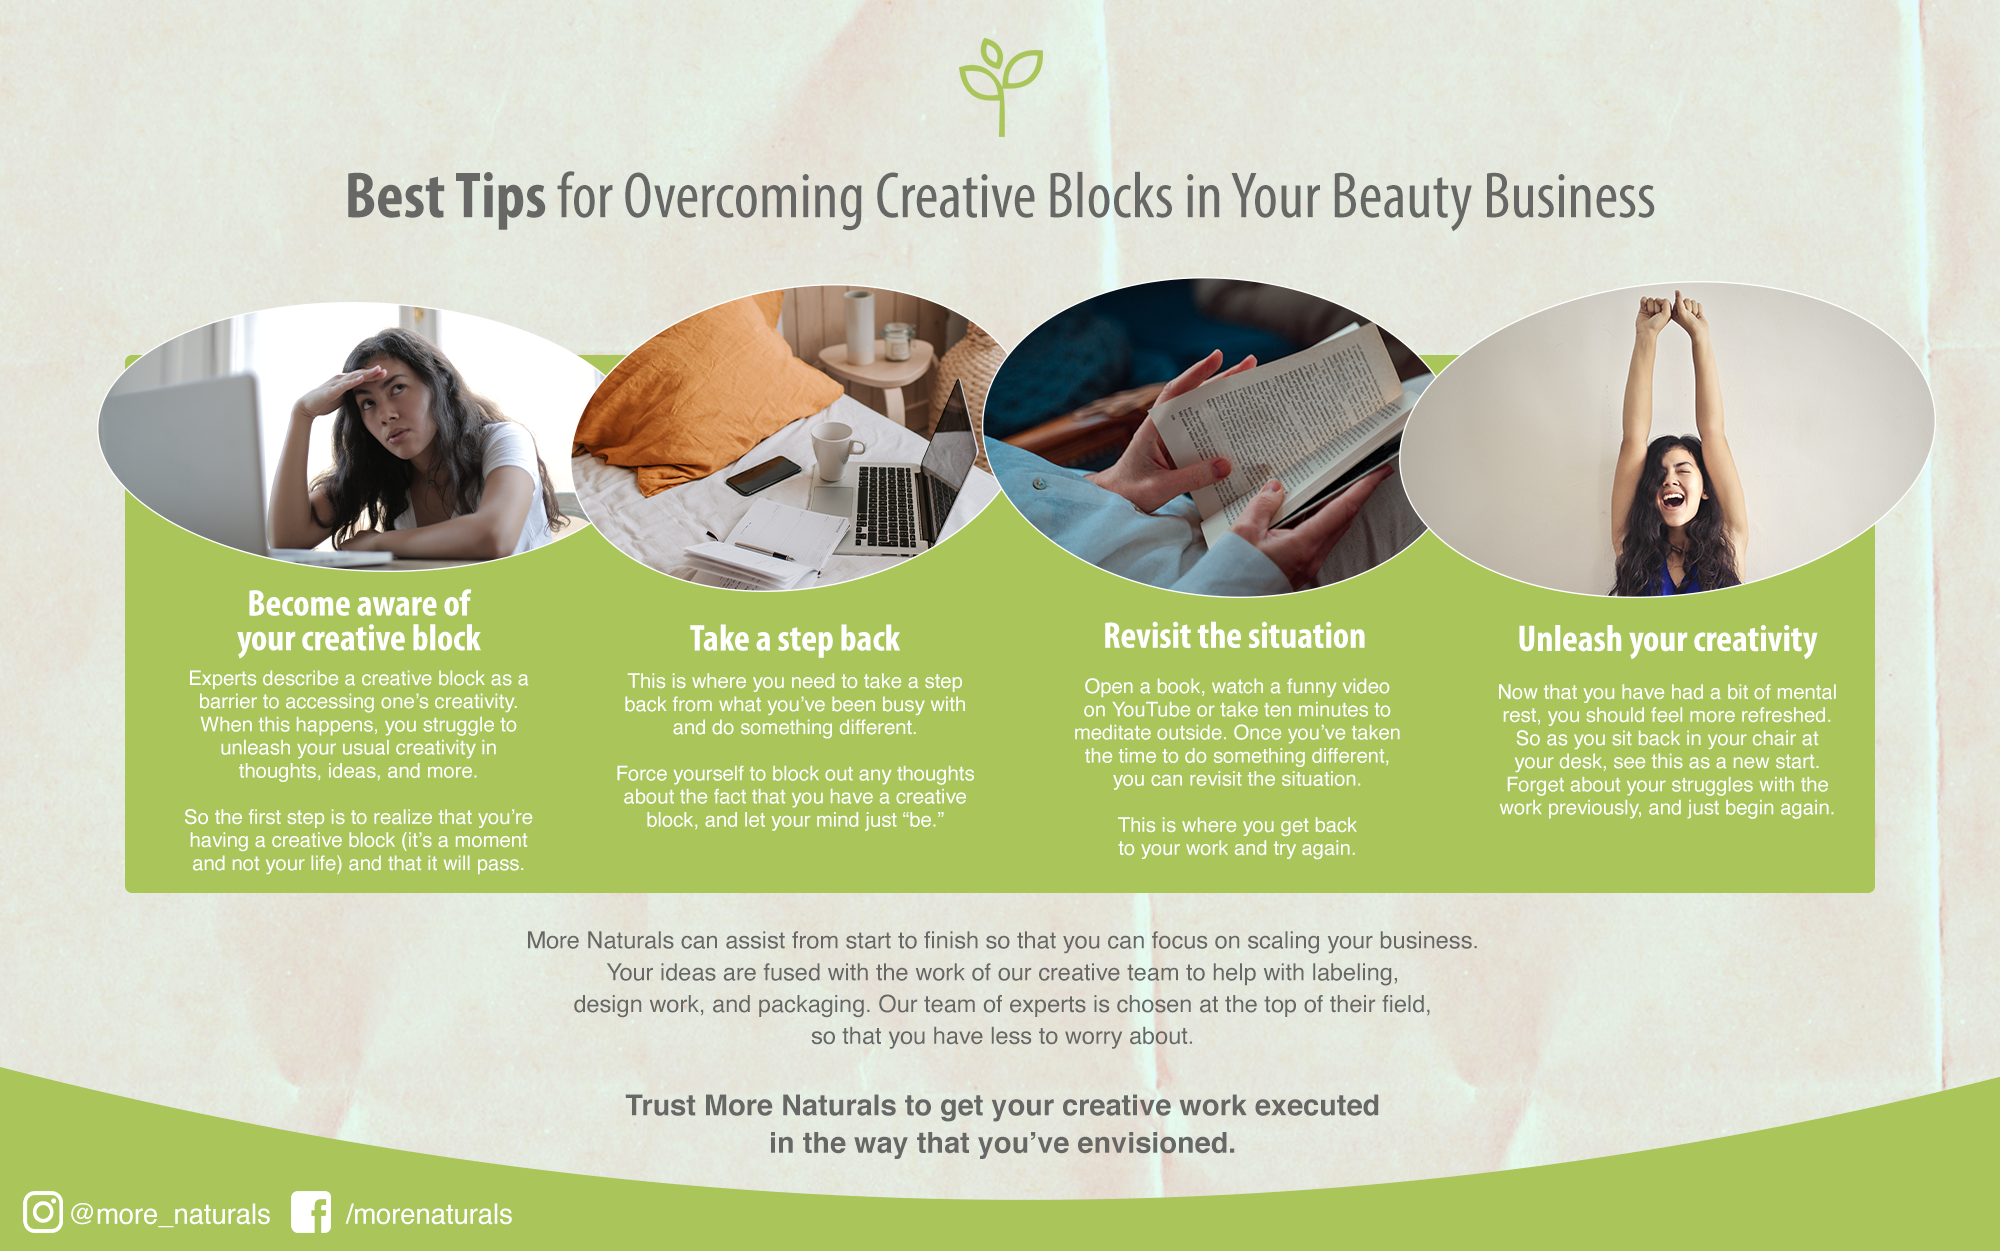 More Naturals Best Tips for Overcoming Creative Blocks in Your Beauty Business